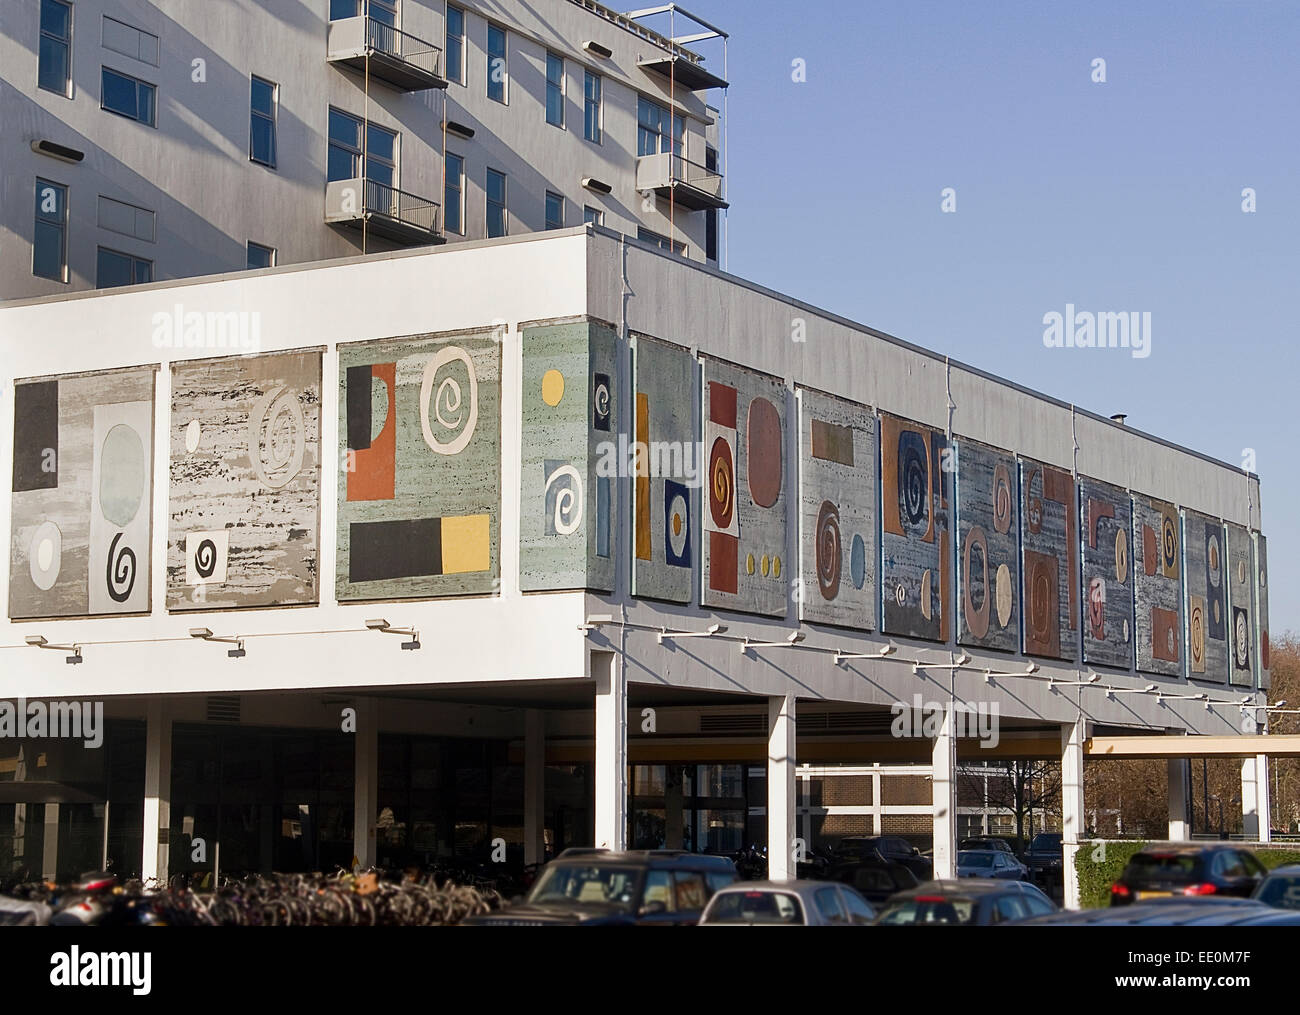 Piper Building in London SW6. This 1950's building  decorated with large art works by artist John Piper - Stock Image